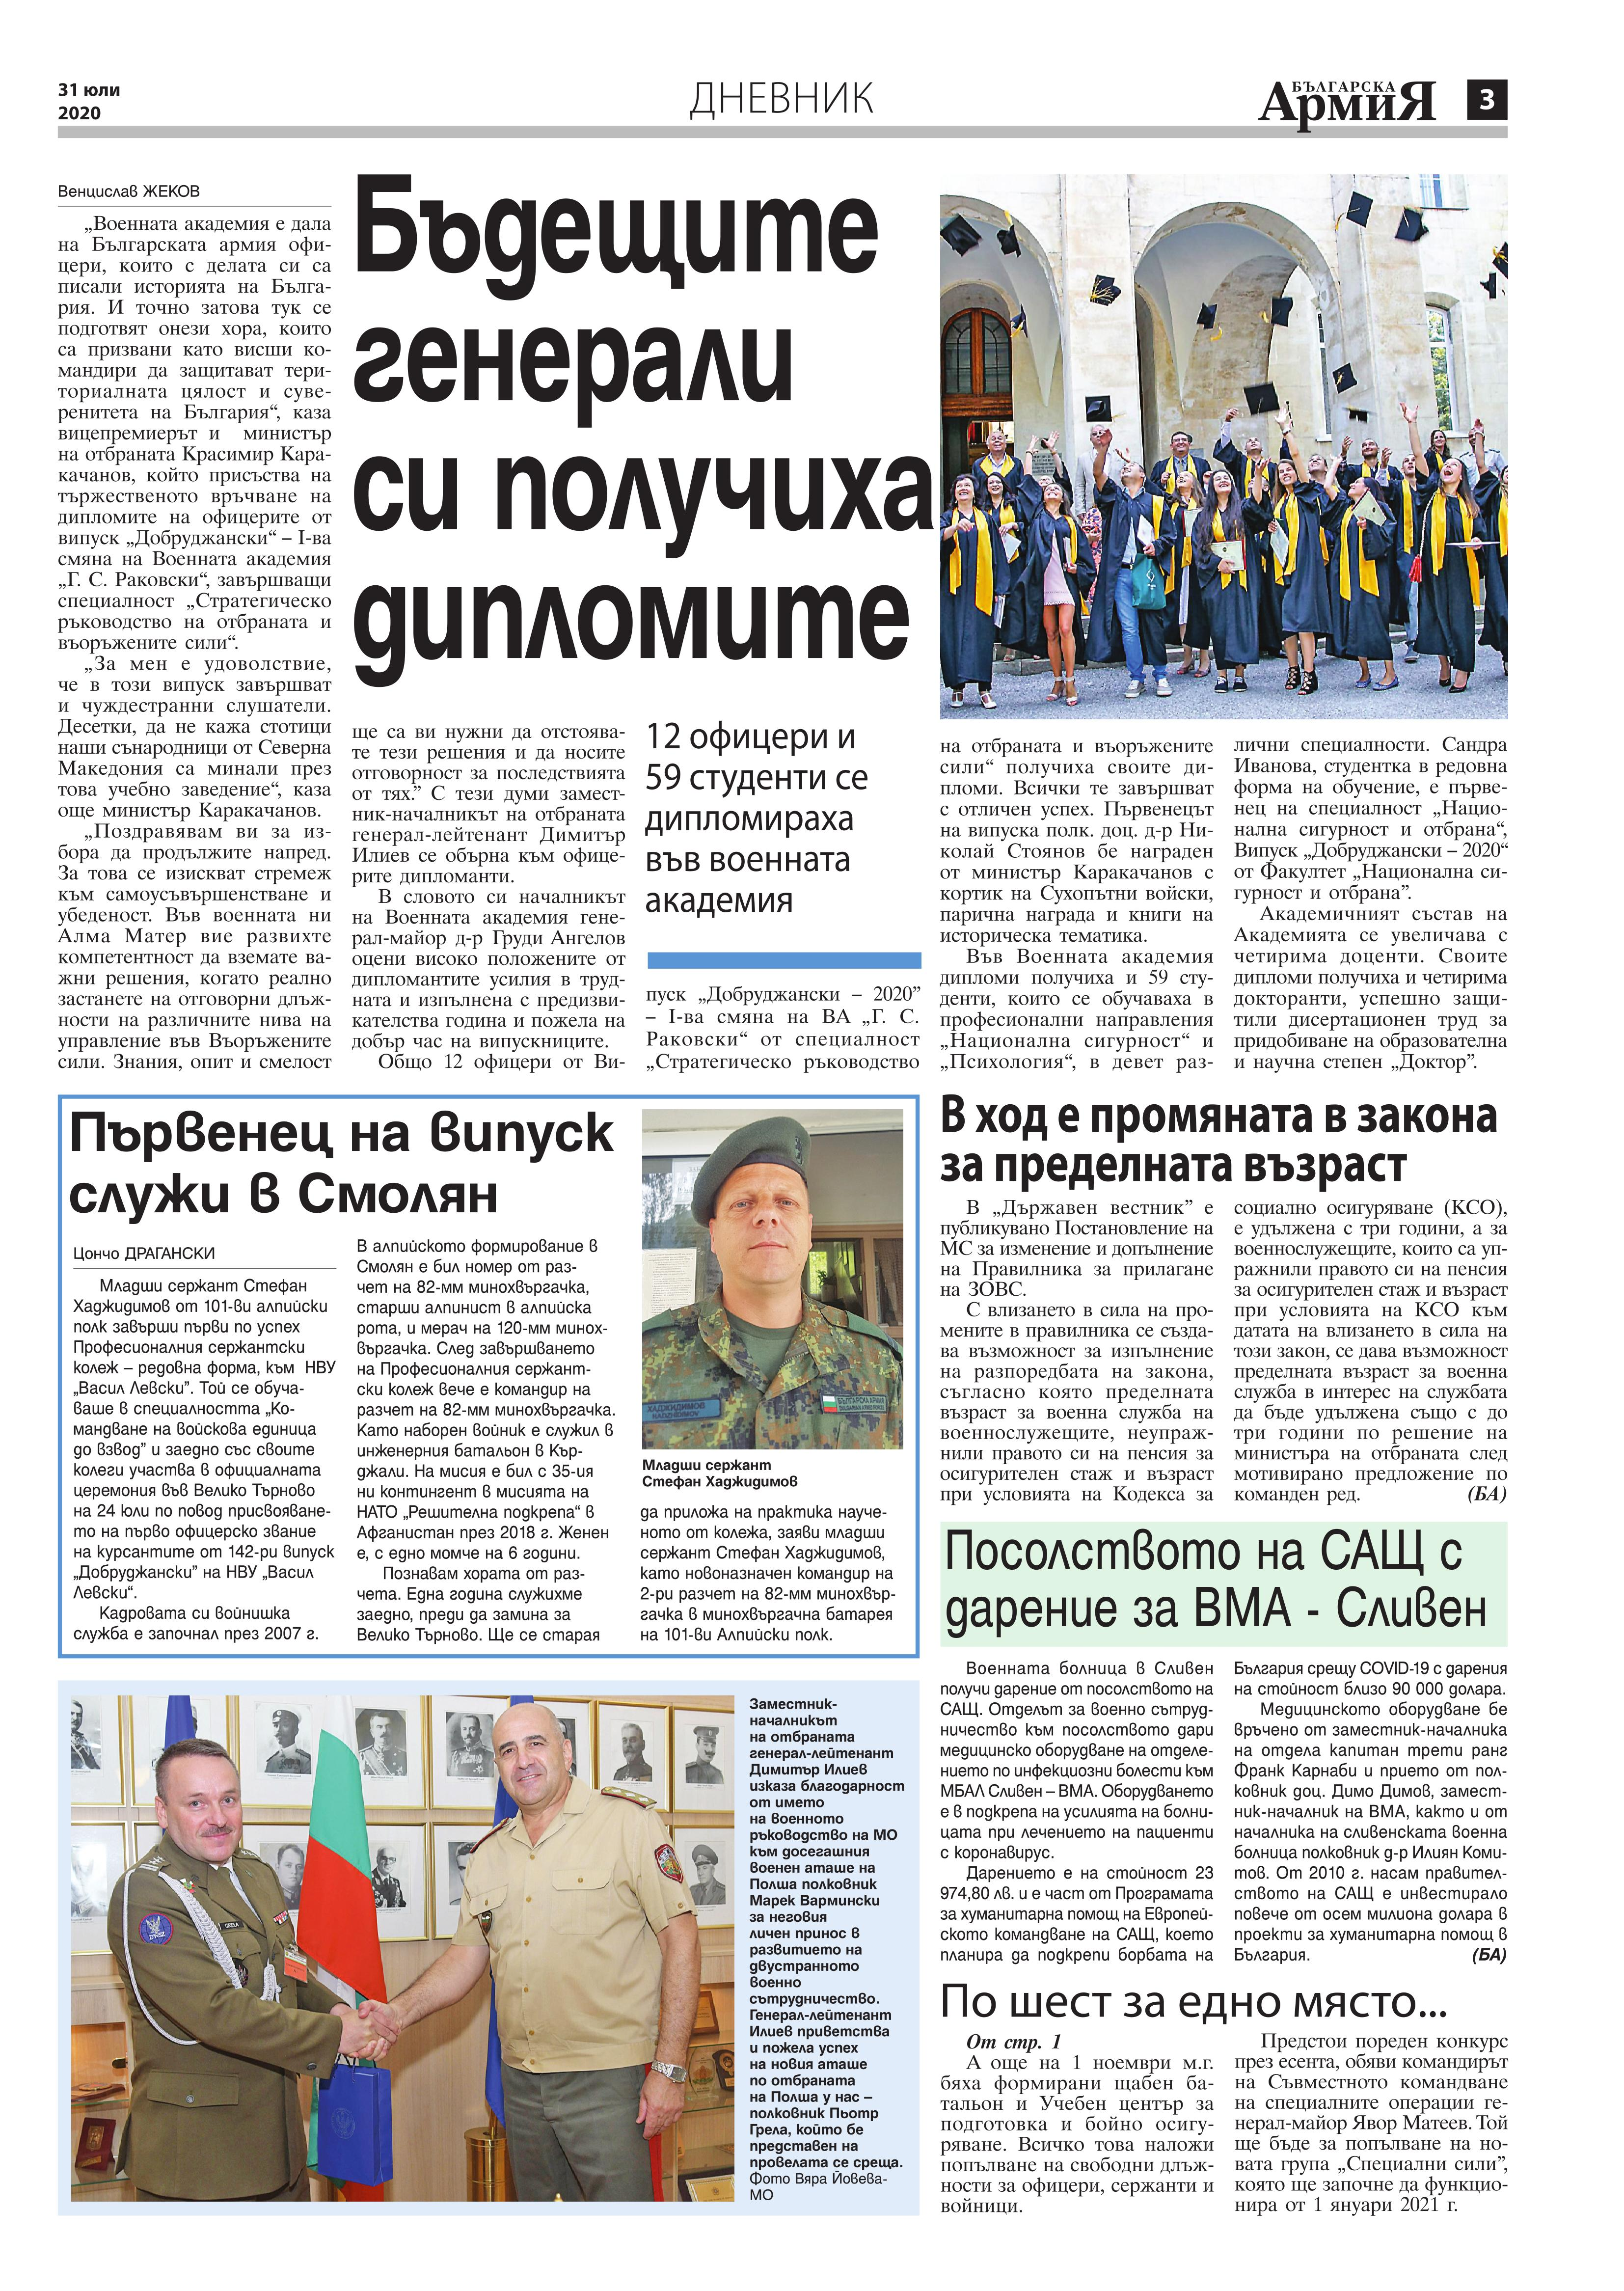 https://armymedia.bg/wp-content/uploads/2015/06/03.page1_-145.jpg